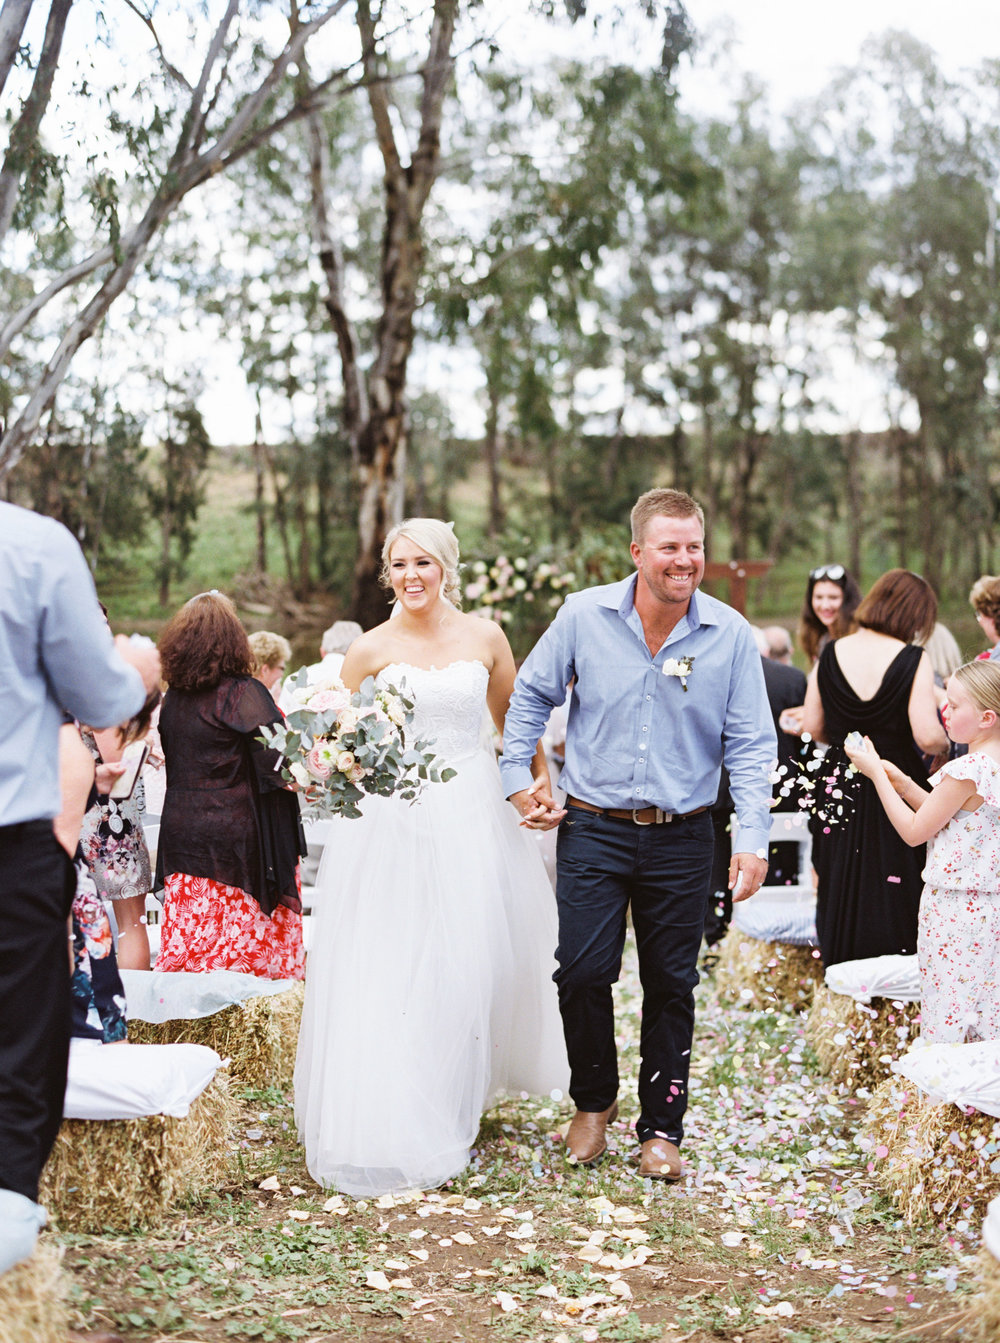 00019- Fine Art Film Dubbo NSW Wedding Photographer Sheri McMahon.jpg